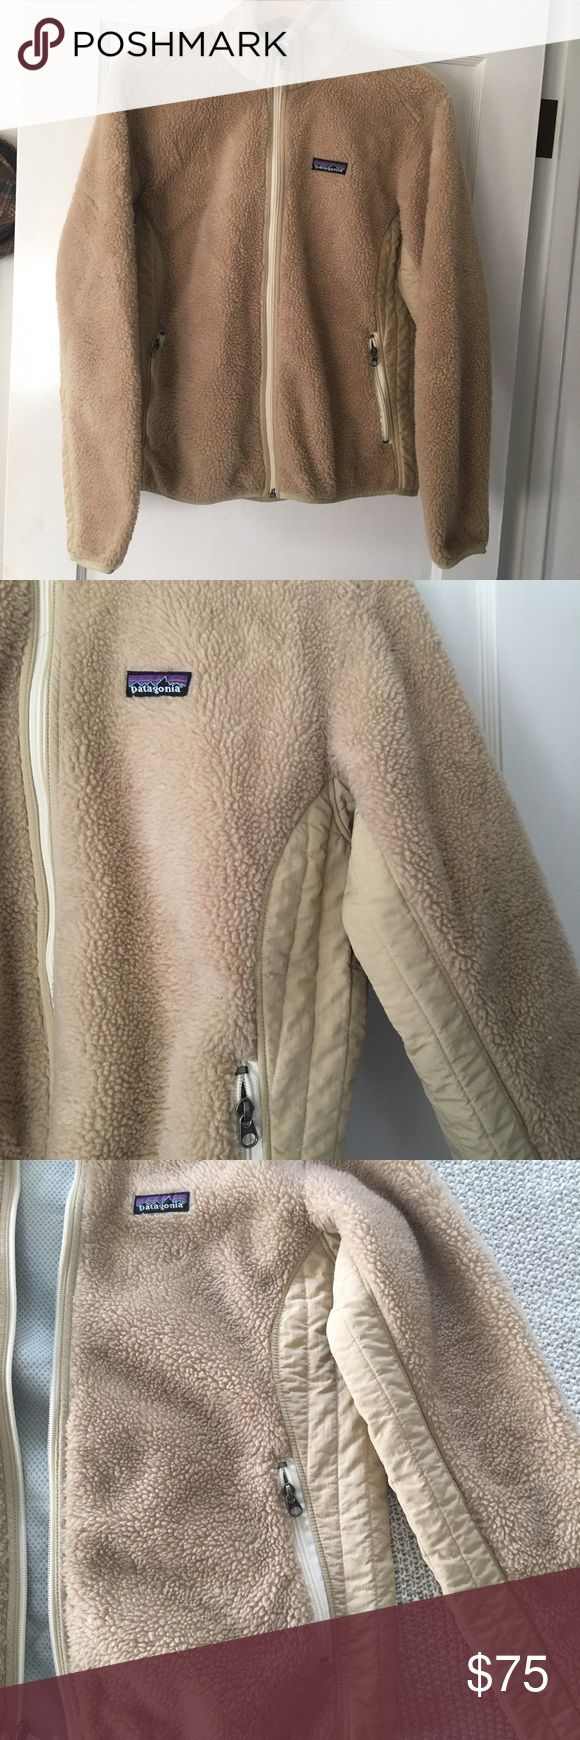 """Patagonia Synchilla Jacket EUC Patagonia Sherpa """"Synchilla"""" Retro Jacket. Size L. Excellent used condition - No stains, etc. Very warm, lined. Patagonia Jackets & Coats"""